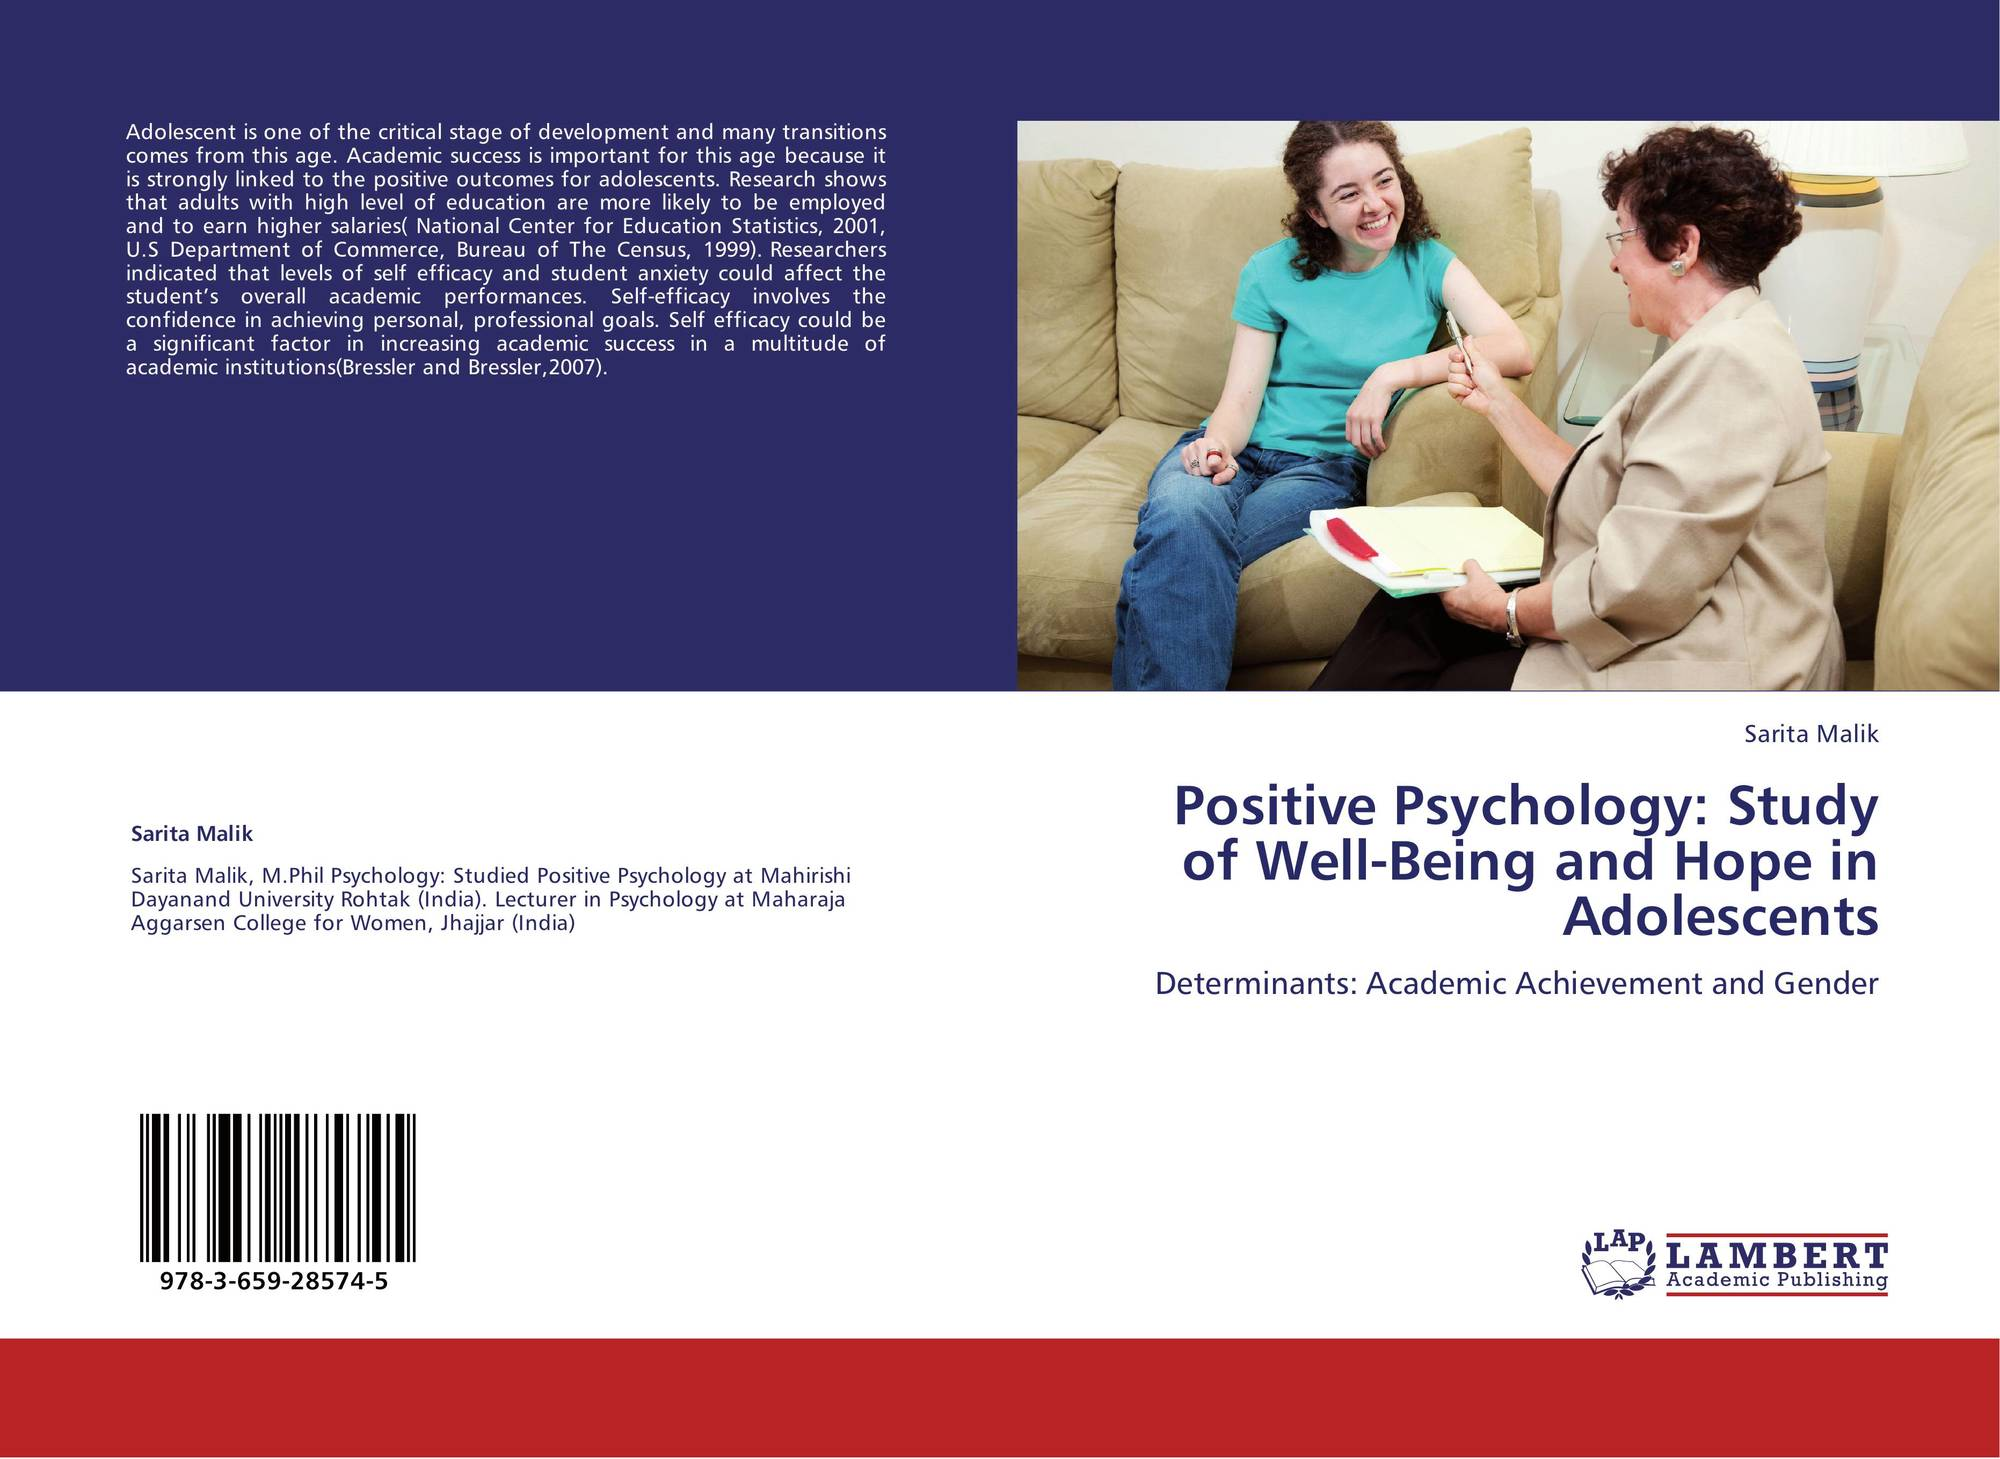 the importance of adolescence in creating successful Helping your child through early adolescence is a booklet based on the latest research in adolescent development and learning, and addresses questions, provides suggestions and tackles issues that parents of young teens generally find most challenging.